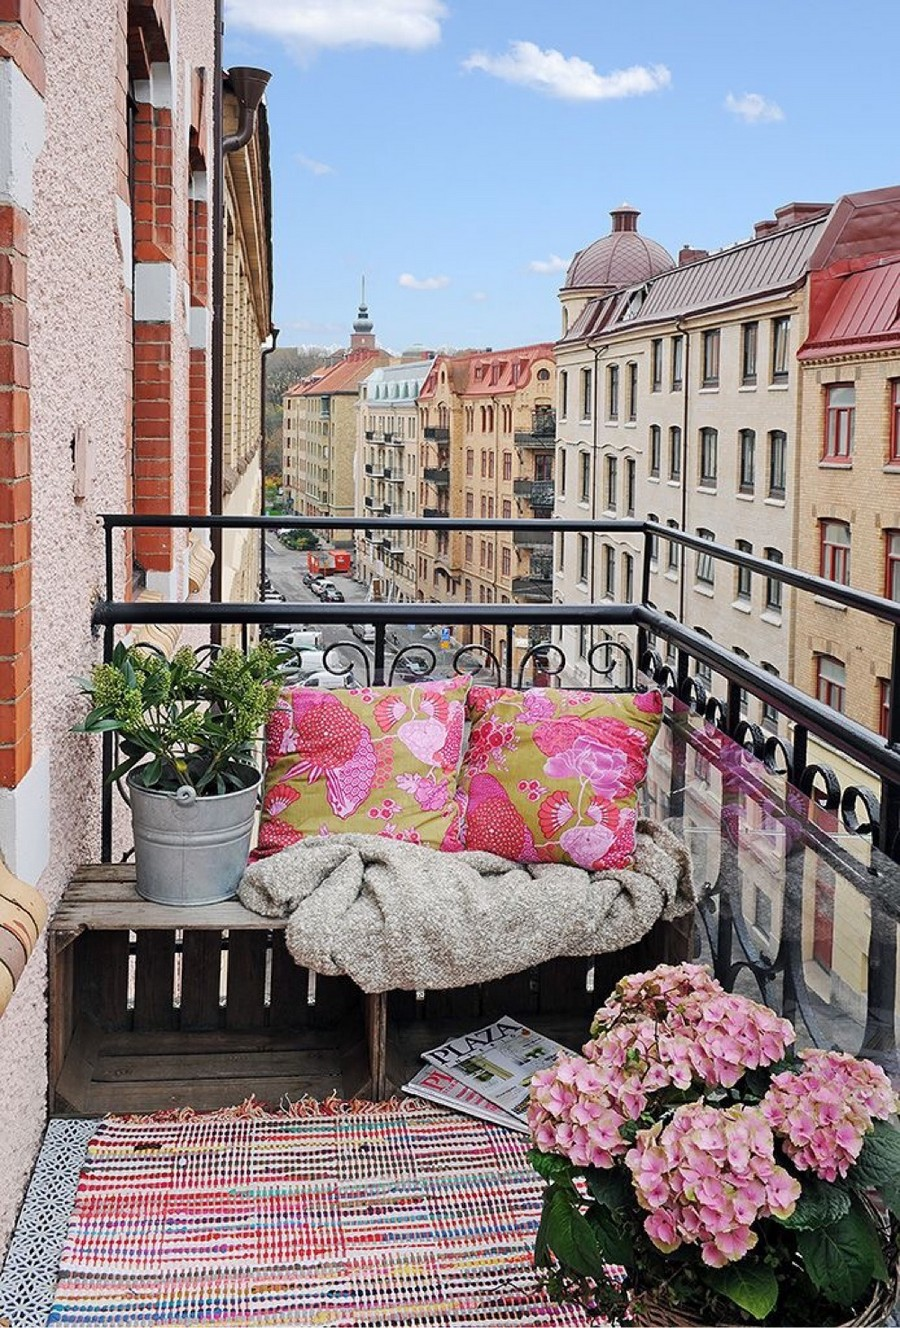 7-modern-French-apartment-interior-design-France-beautiful-balcony-cozy-bench-sitting-spot-flowers-blankets-pillows-Paris